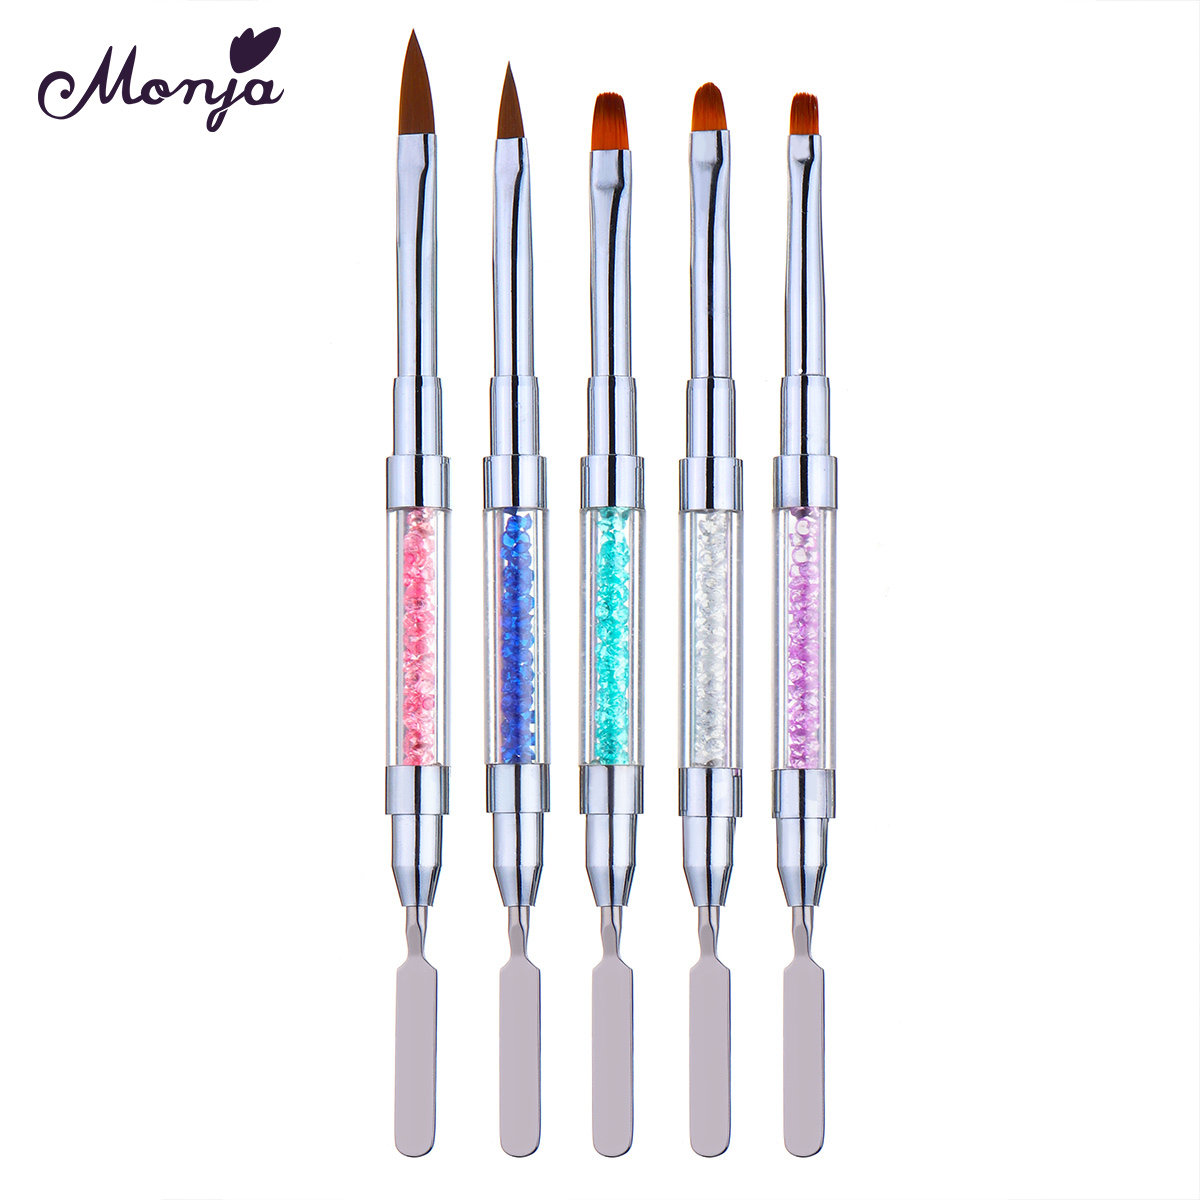 Monja 1pcs Double Head Nail Art Tool Light Therapy Pen Crystal Carved Painting Manicure Tool